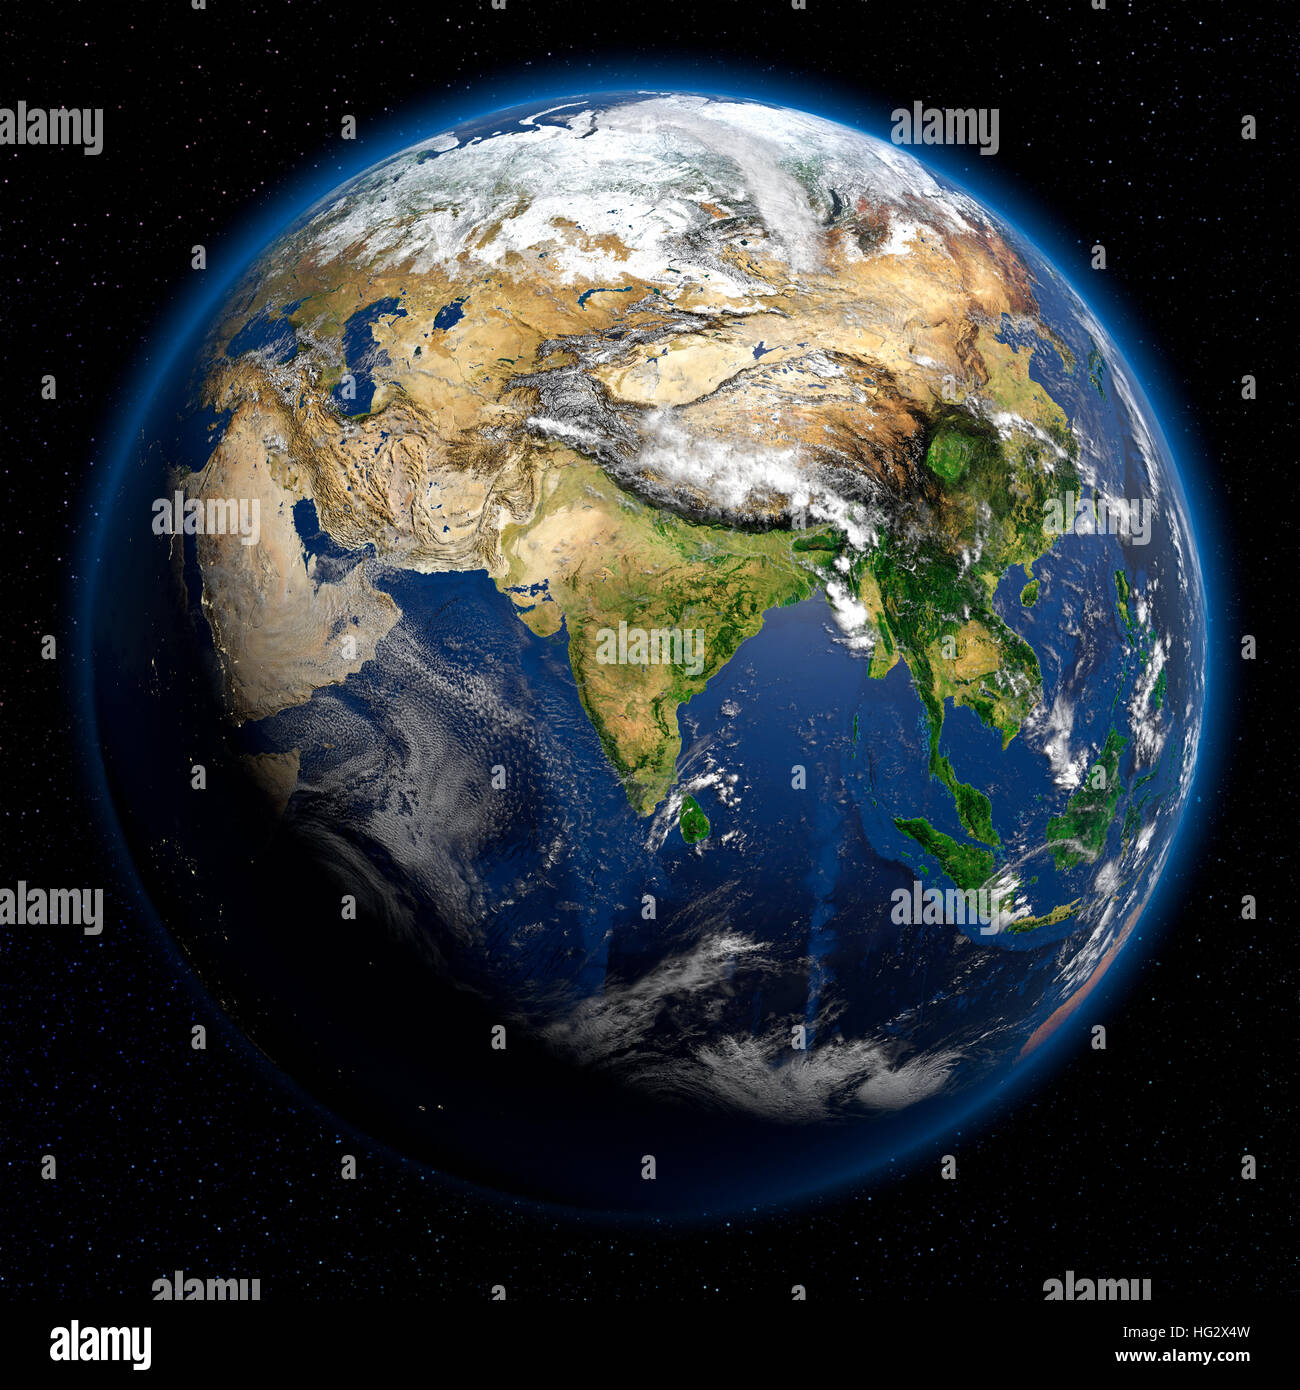 Earth viewed from space showing Central Asia. Realistic digital illustration including relief map hill shading of - Stock Image